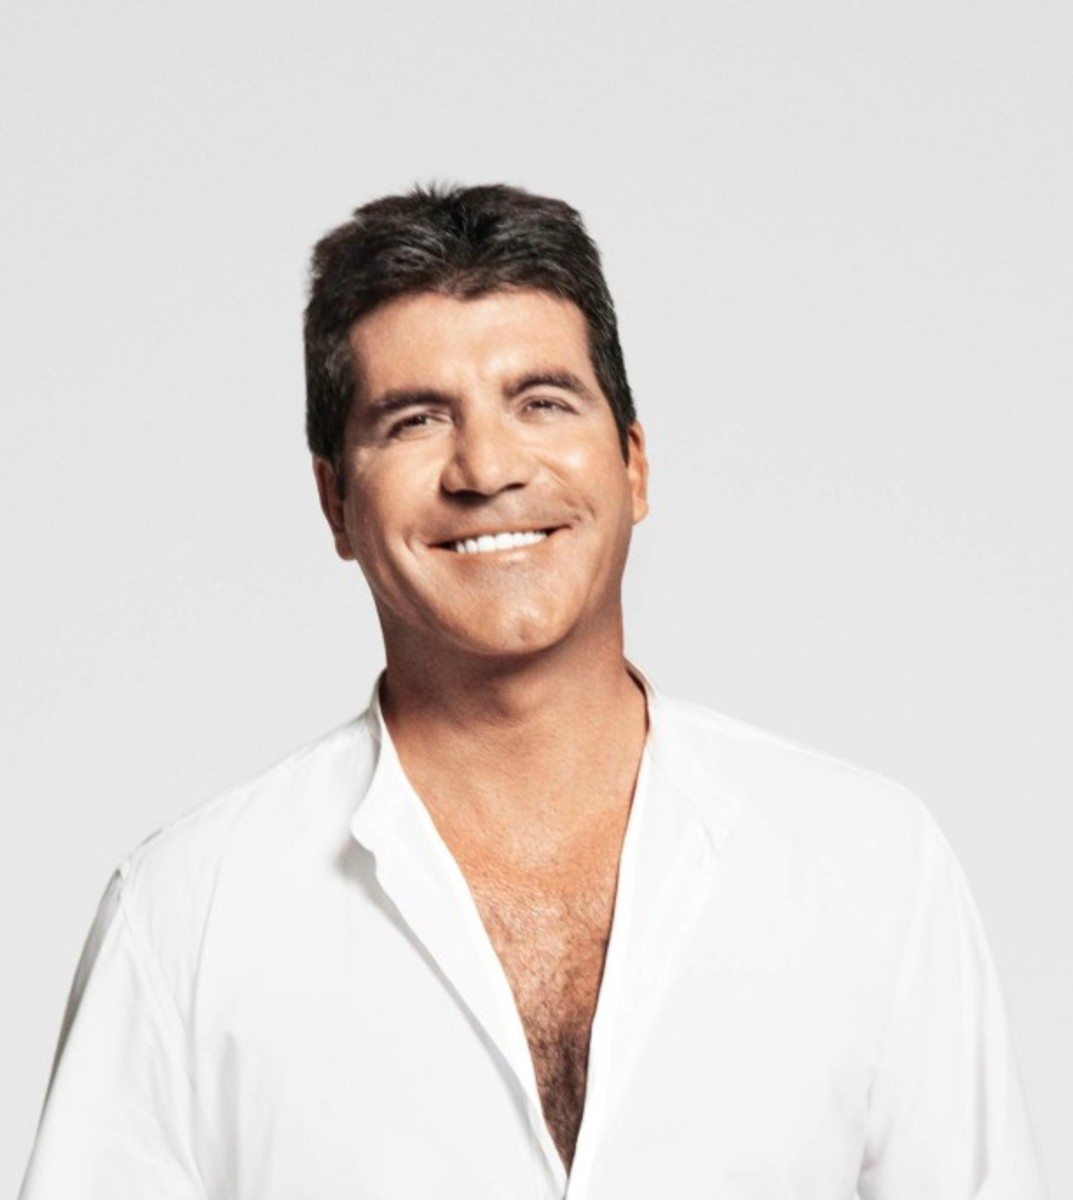 Simon Cowell Bringing The 'Ultimate DJ' To Reality